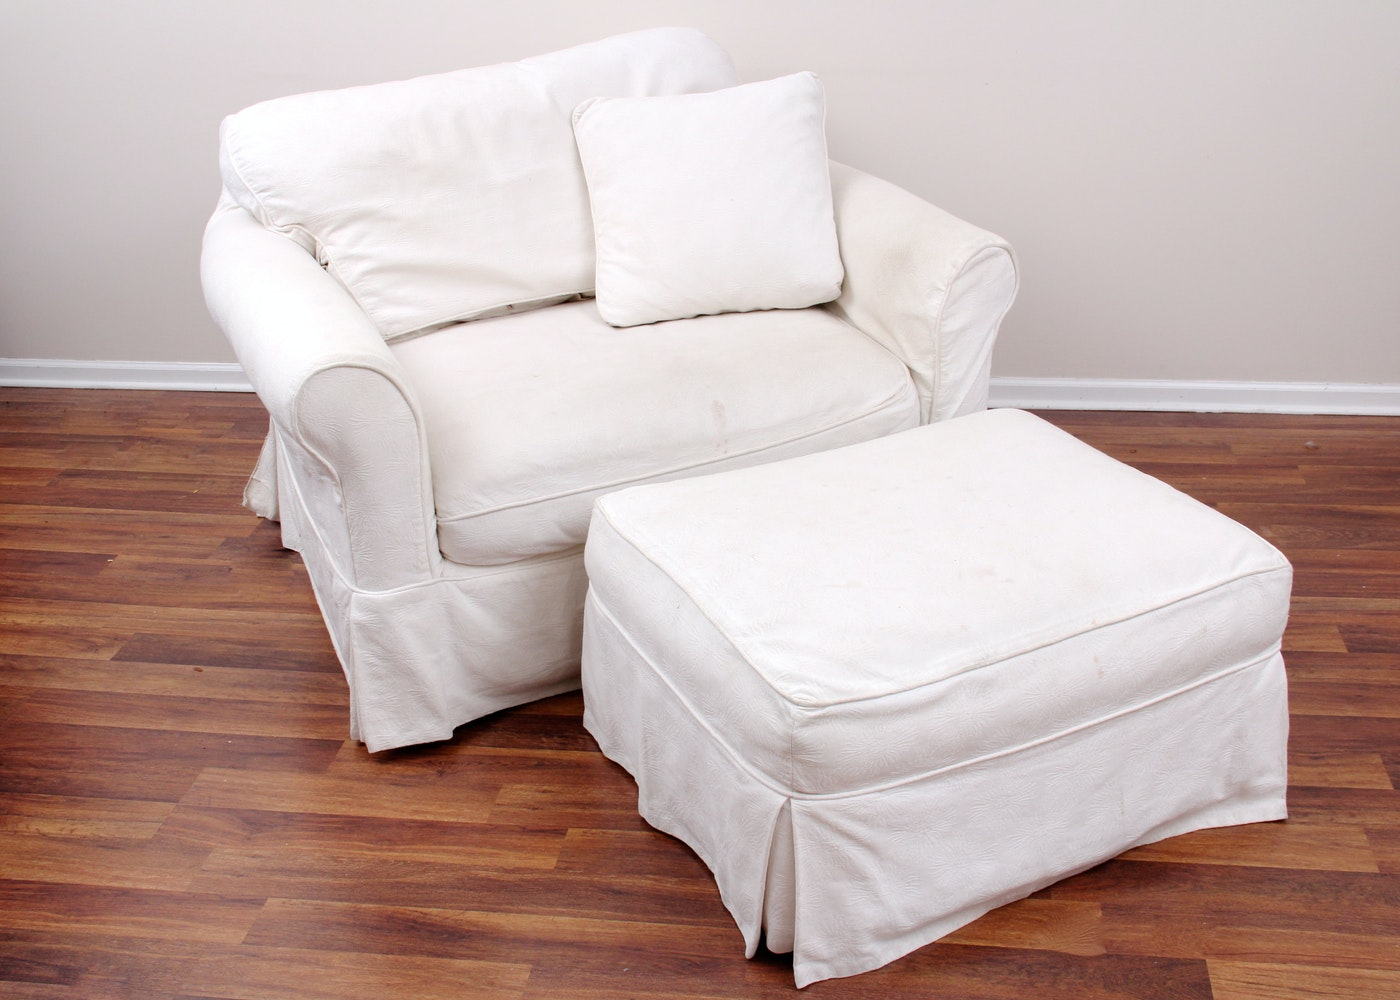 Arhaus Chair And Ottoman With Camden Collection Slipcovers